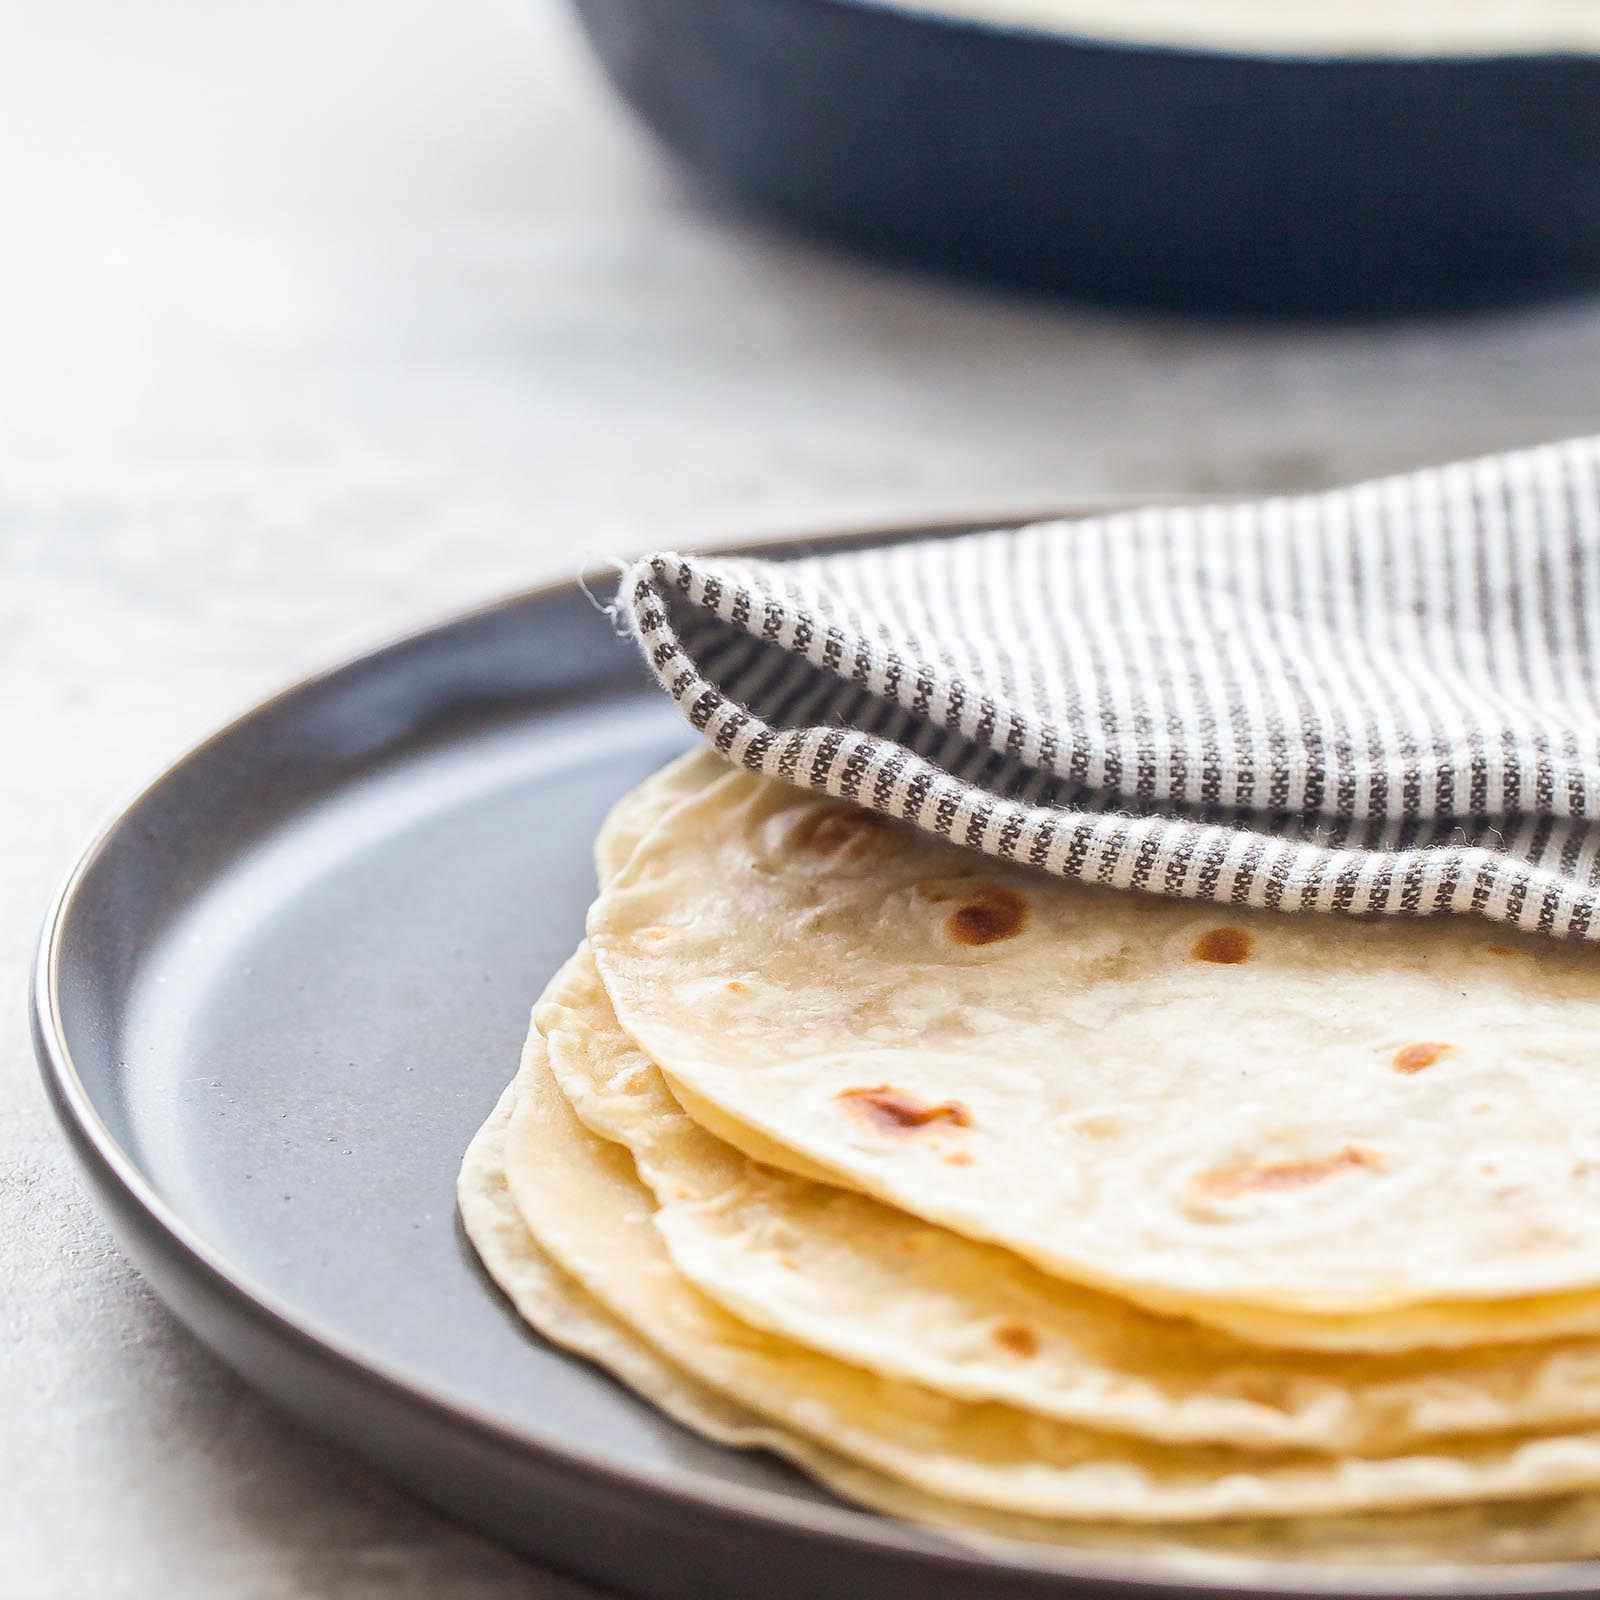 A stack of homemade flour tortillas on a platter covered by a striped towel. A cast iron skillet with another tortilla inside is in the background.